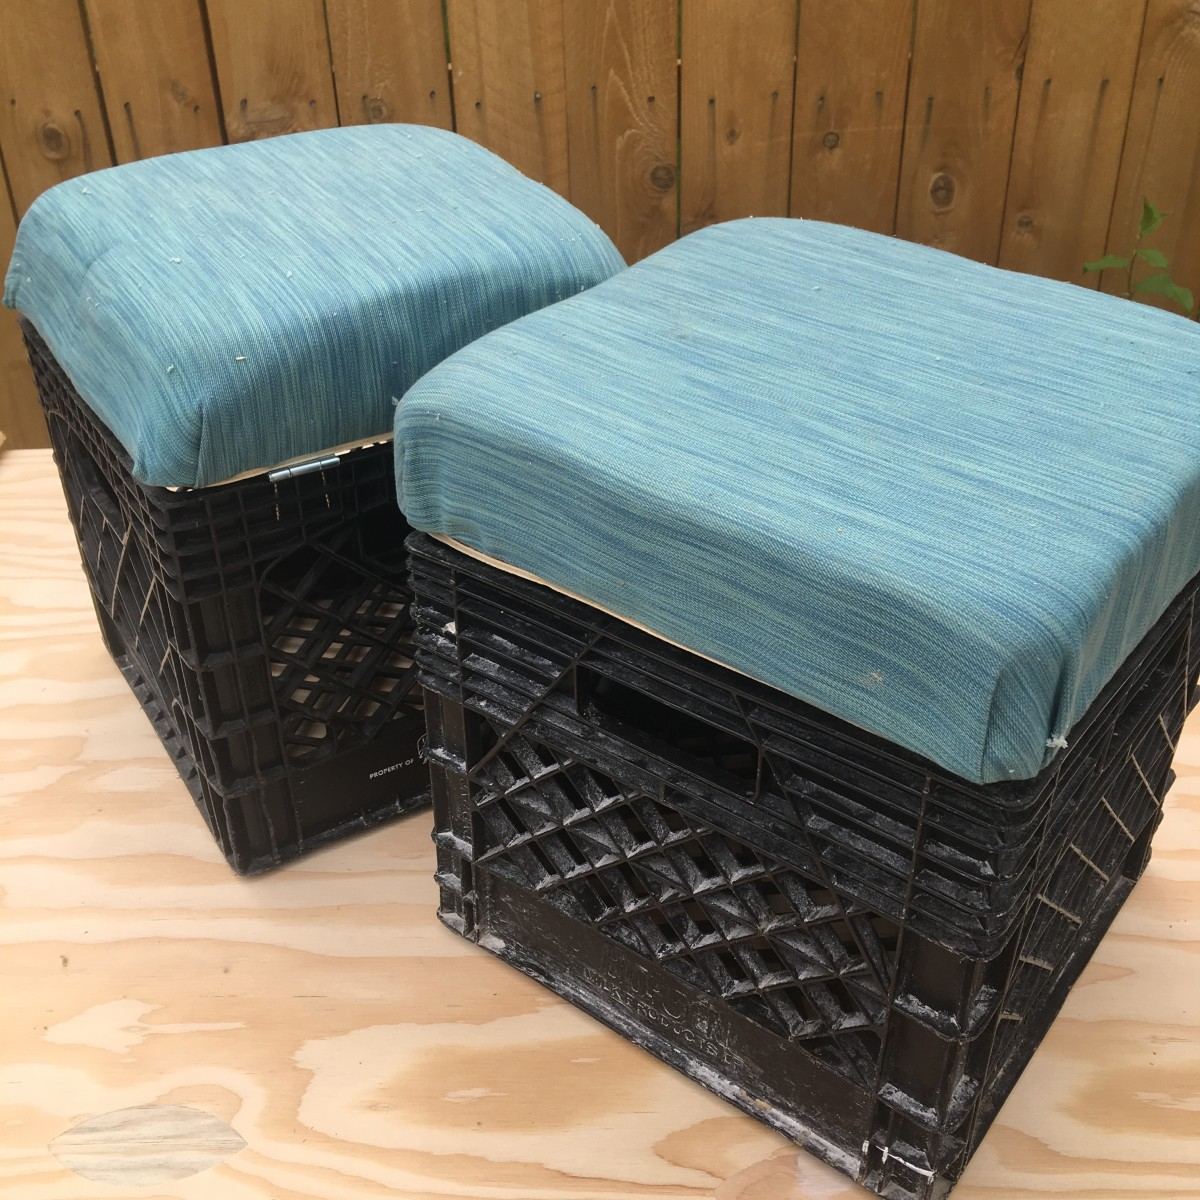 How to Upcycle a Milk Crate Into a Storage Ottoman